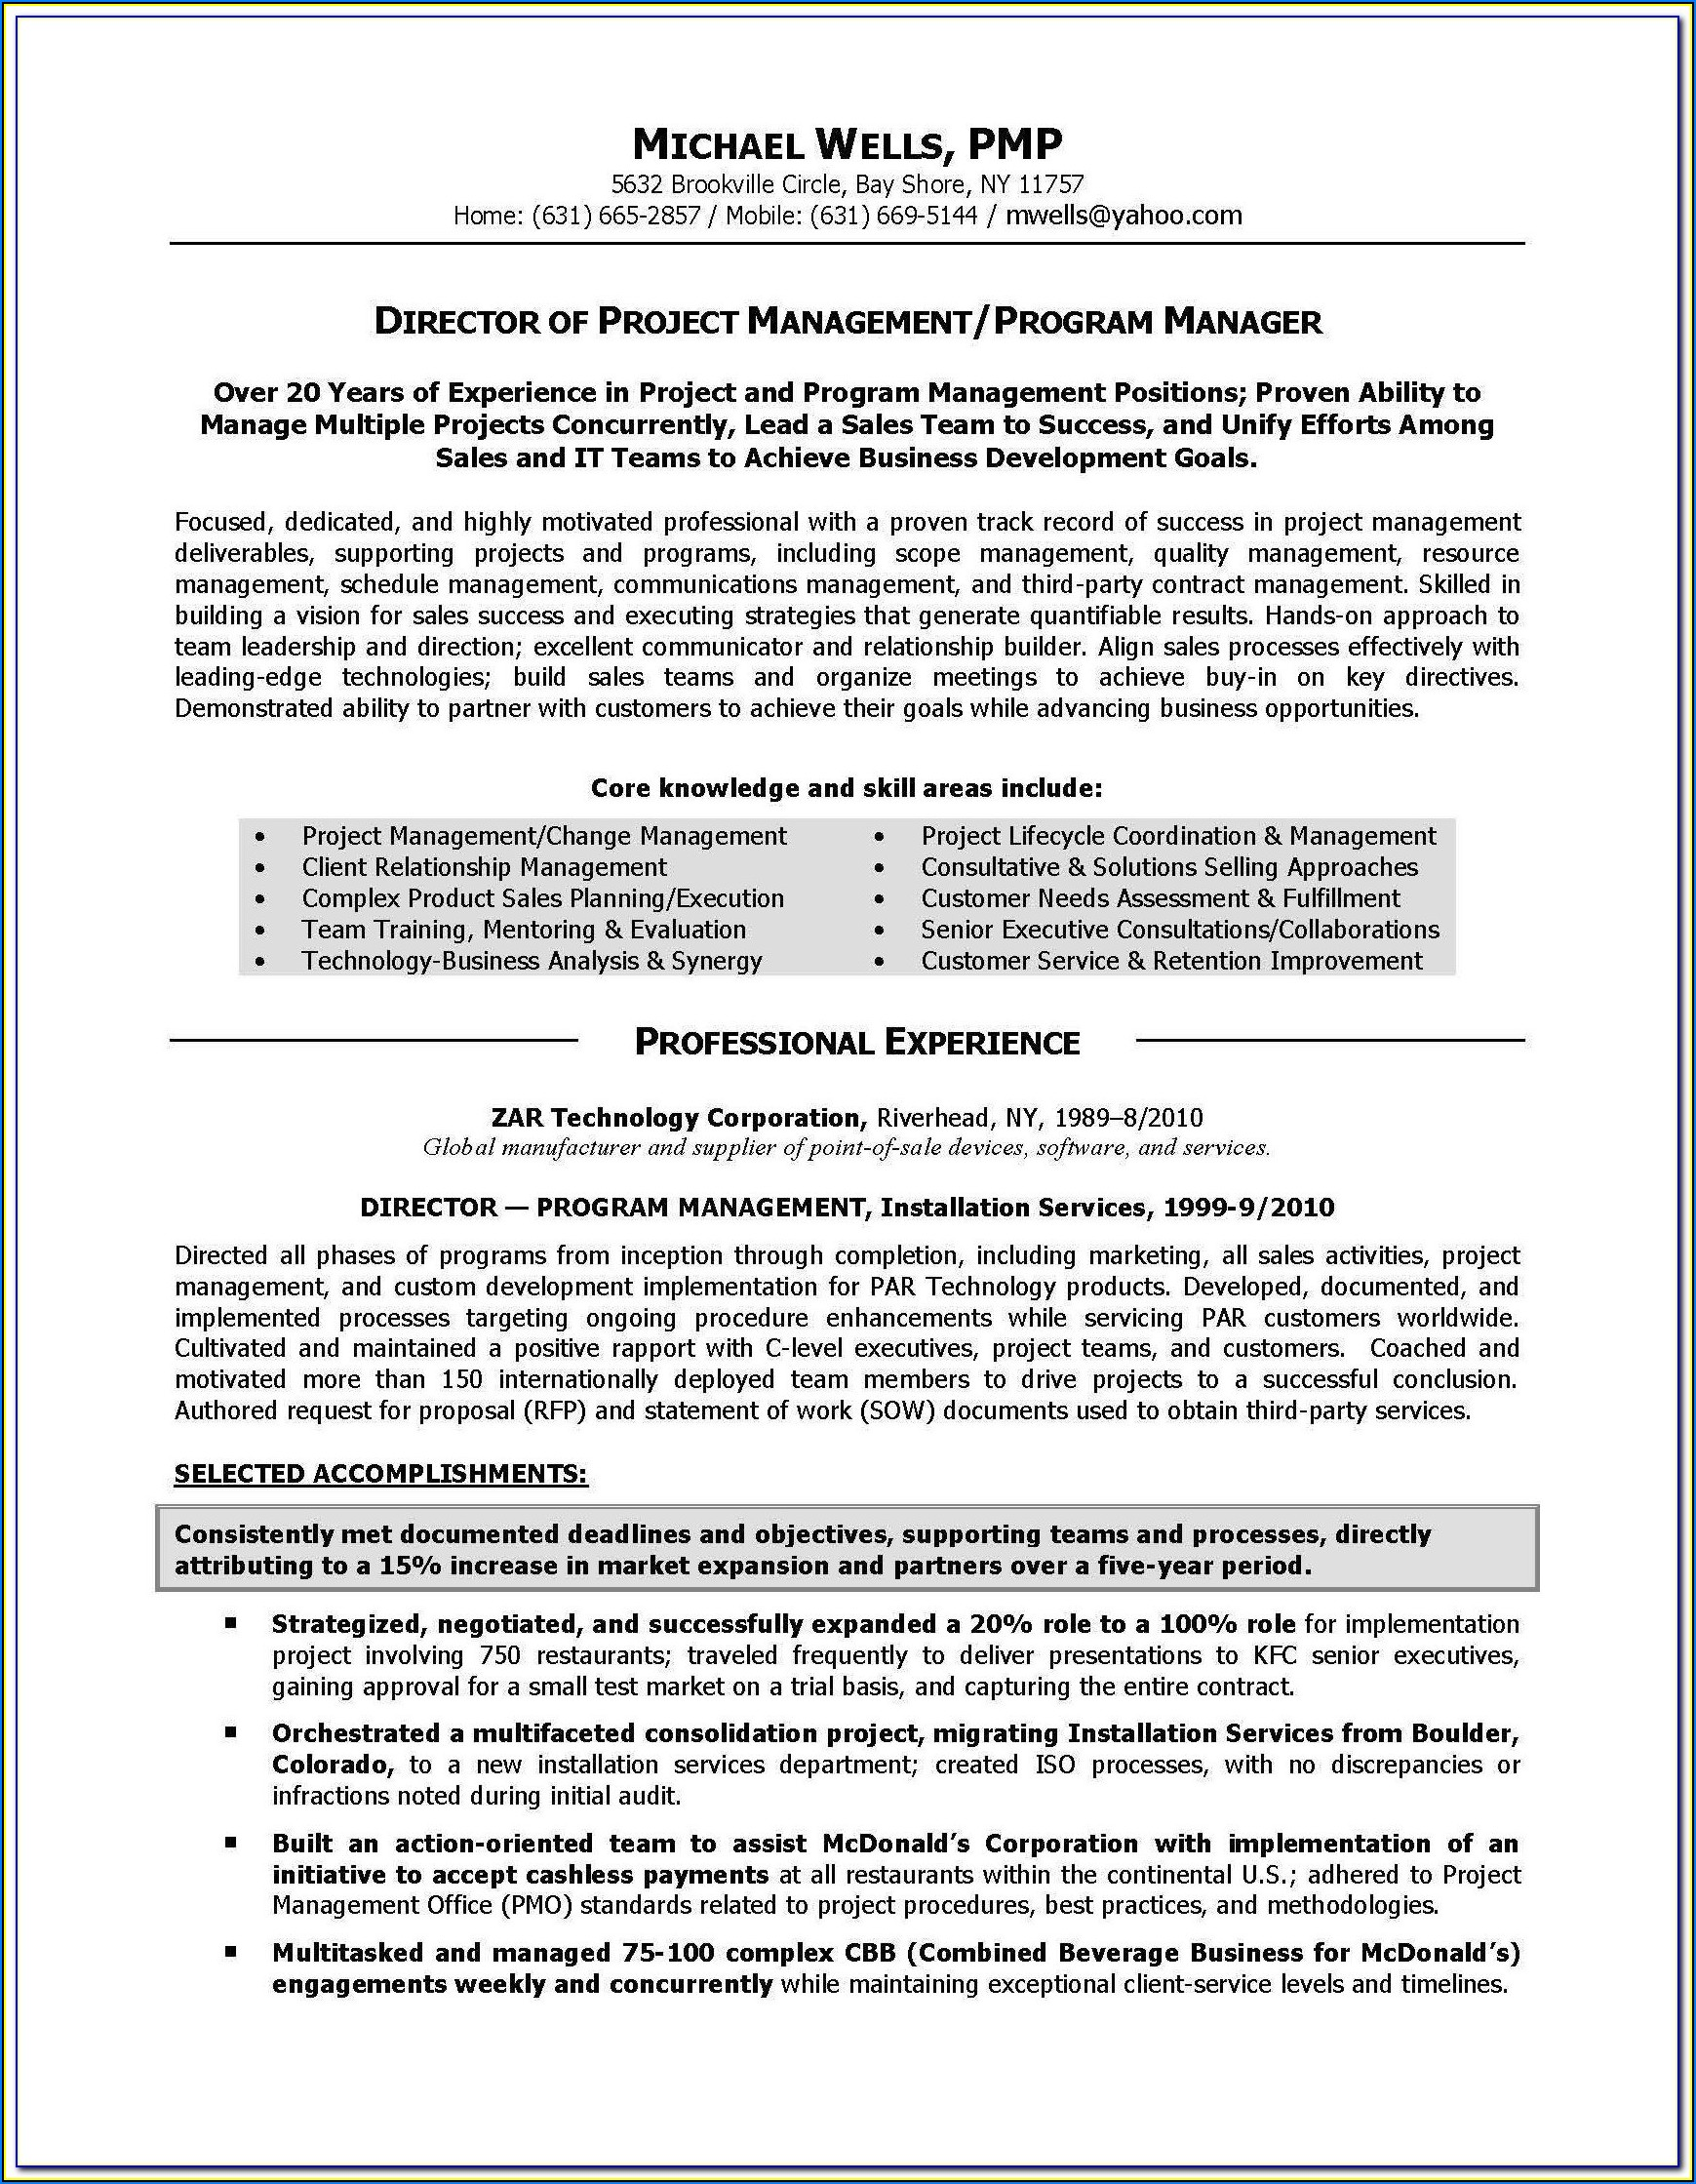 groupon resume writing service services project manager for healthcare professionals Resume Project Manager Resume Writing Service